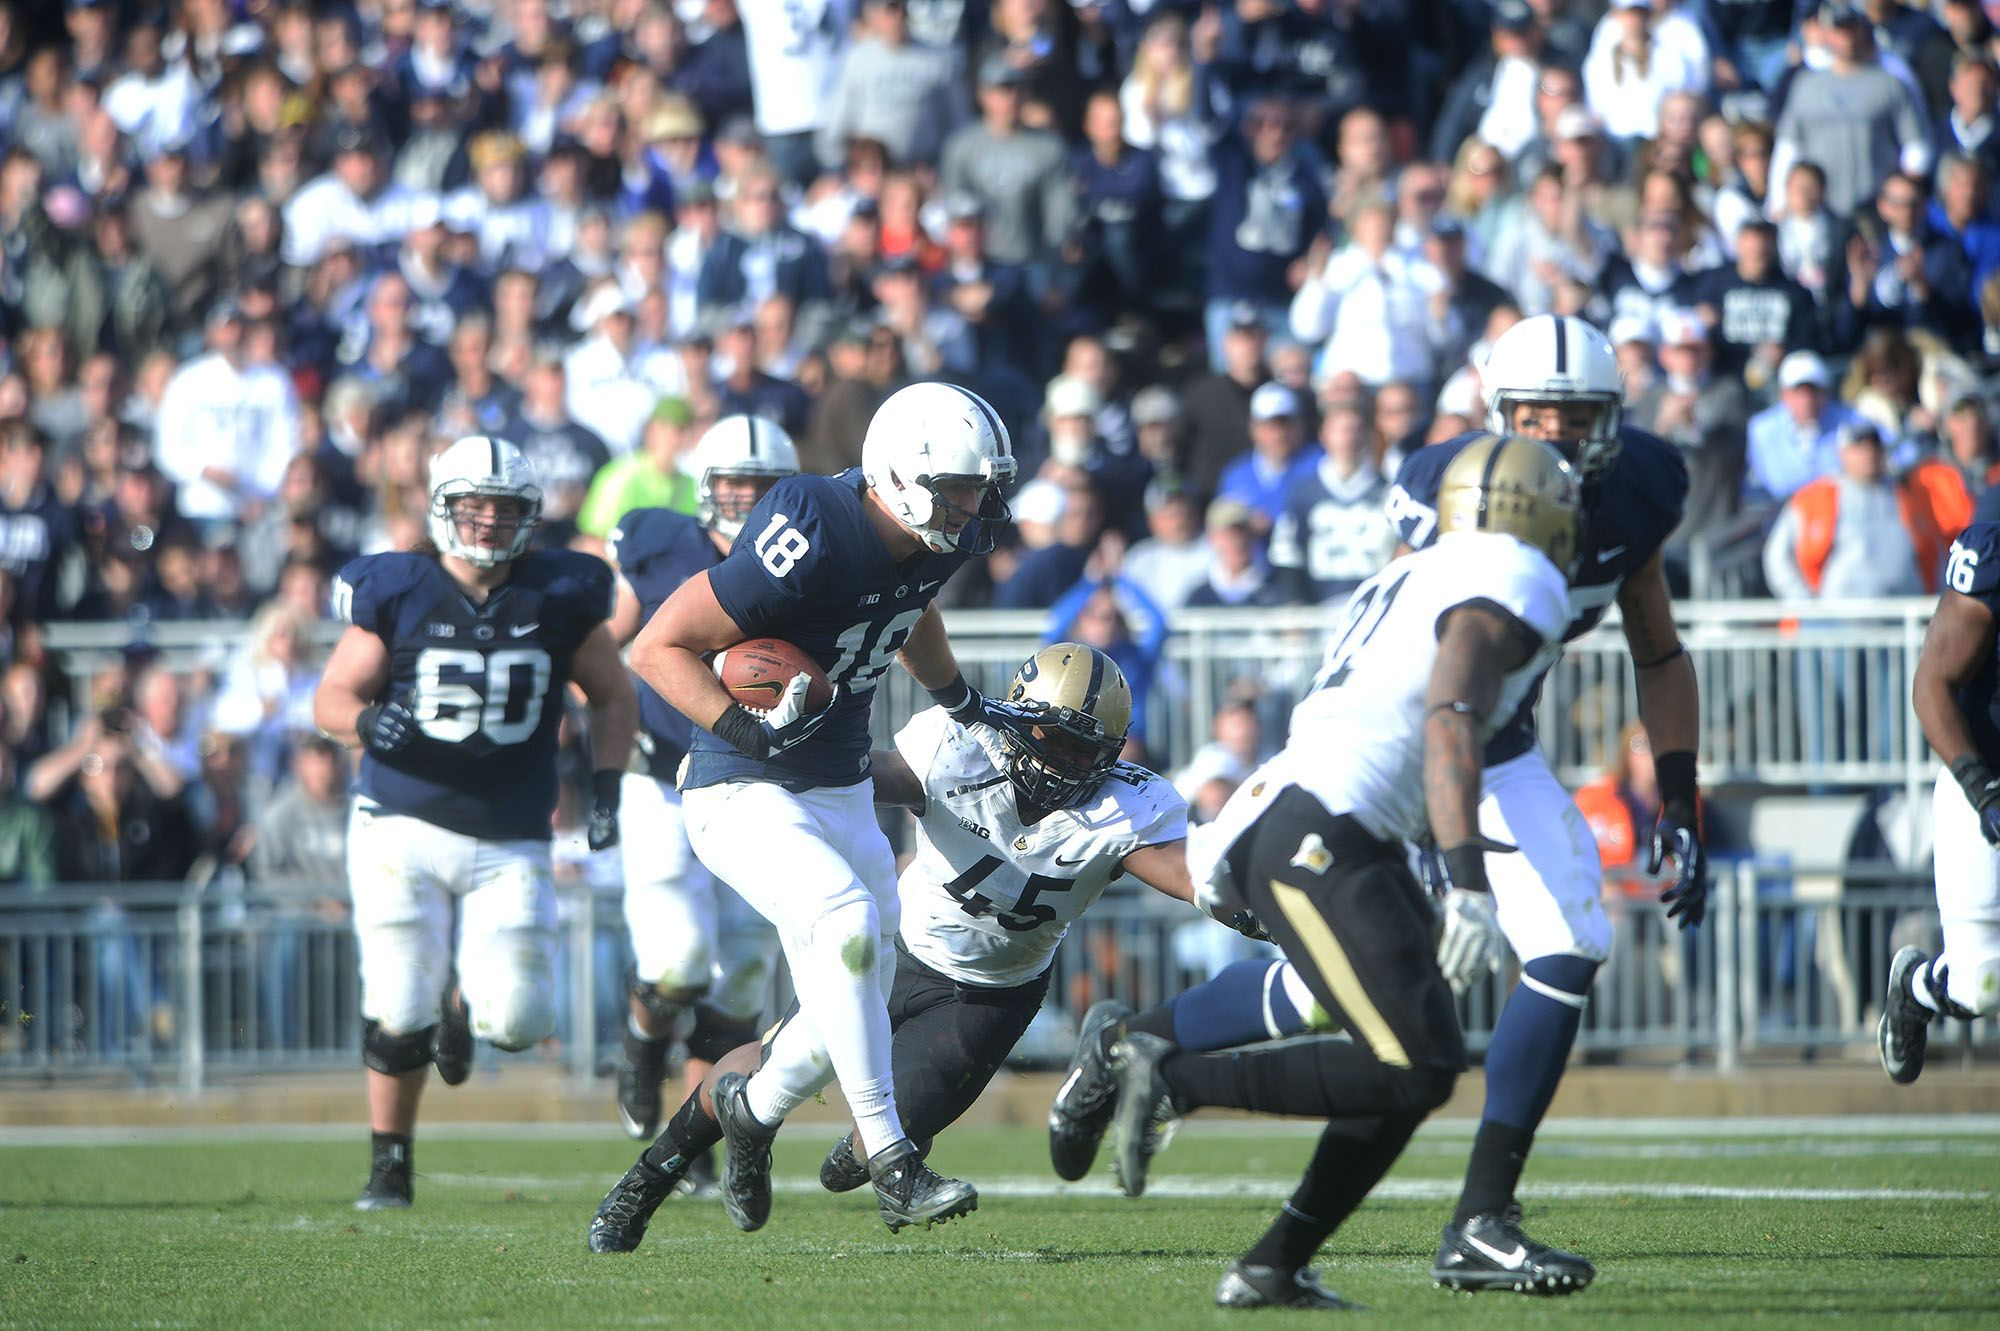 PENN STATE – FOOTBALL 2013 – CAREER-LONG pass from Hackenberg to tight end Jesse James covers 58 yards.